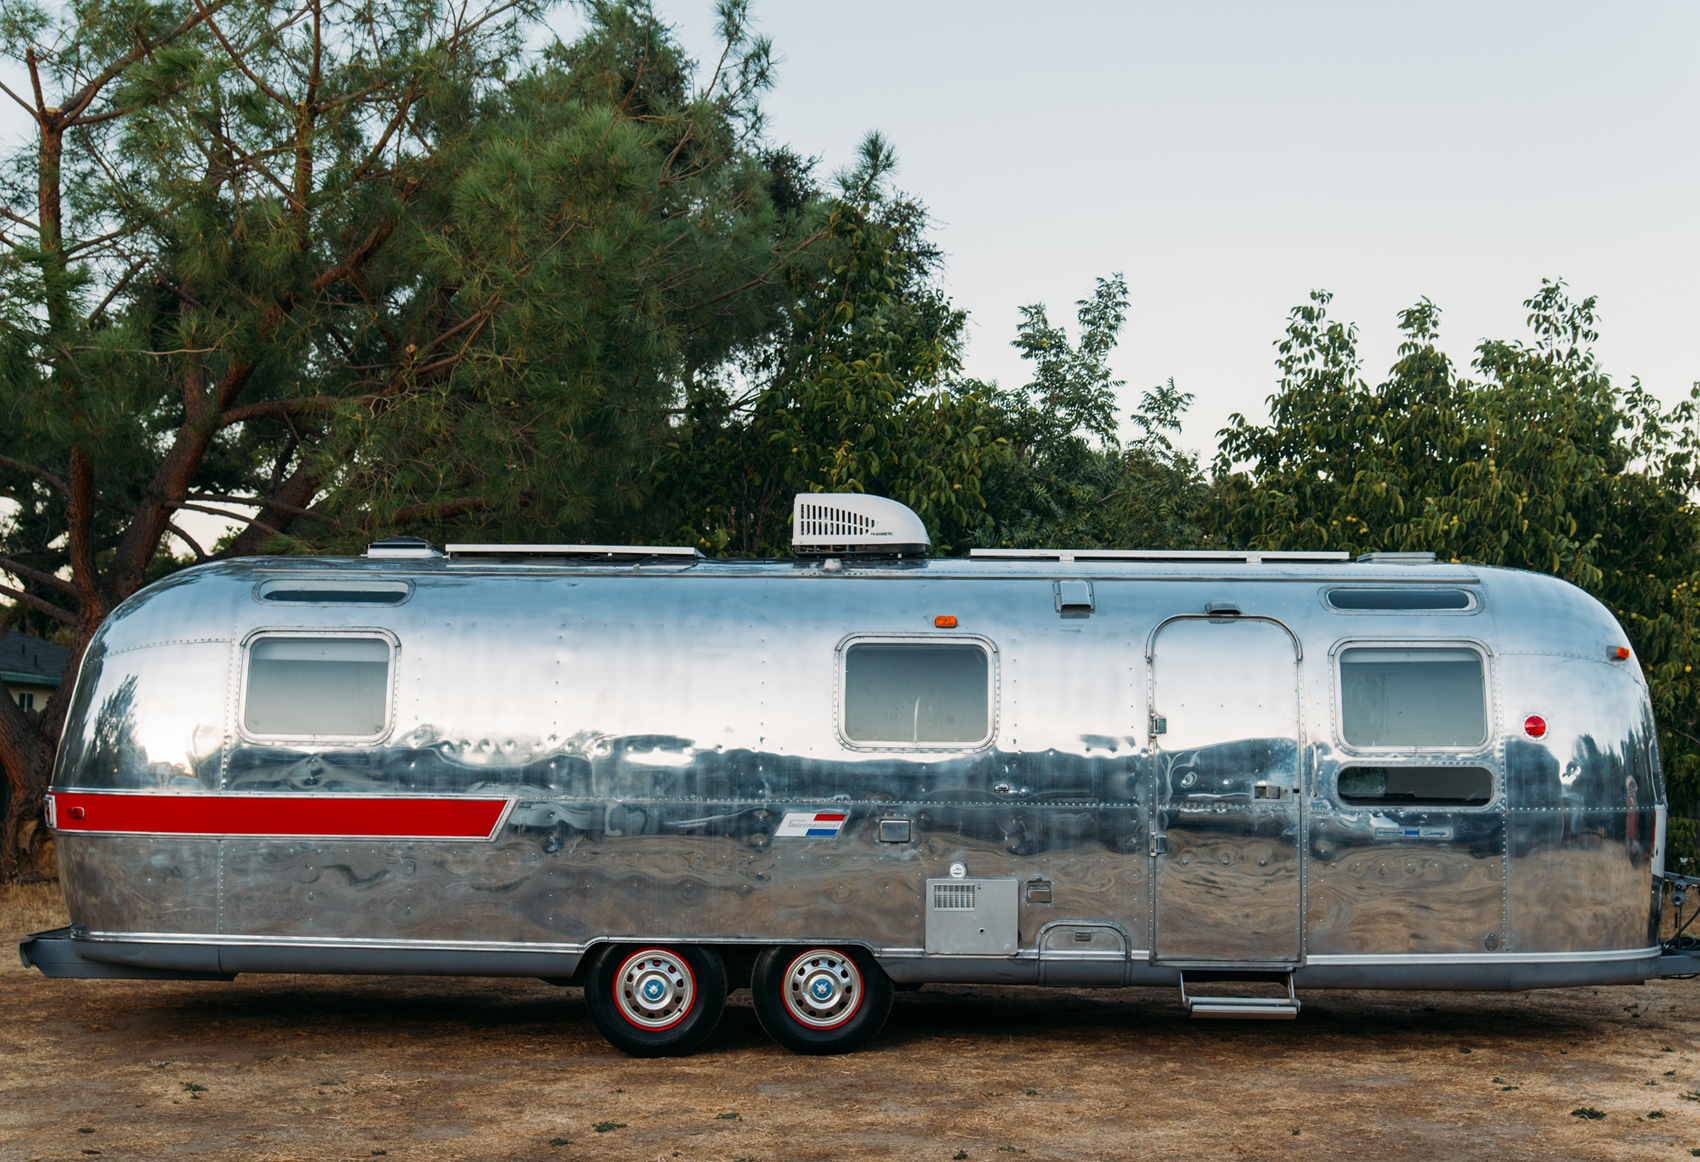 1973 AIRSTREAM VINTAGE TRAILER AVAILABLE FOR MOVIE AND PRODUCTION RENTALS FOR HAIR AND MAKEUP, FILMING AND MORE